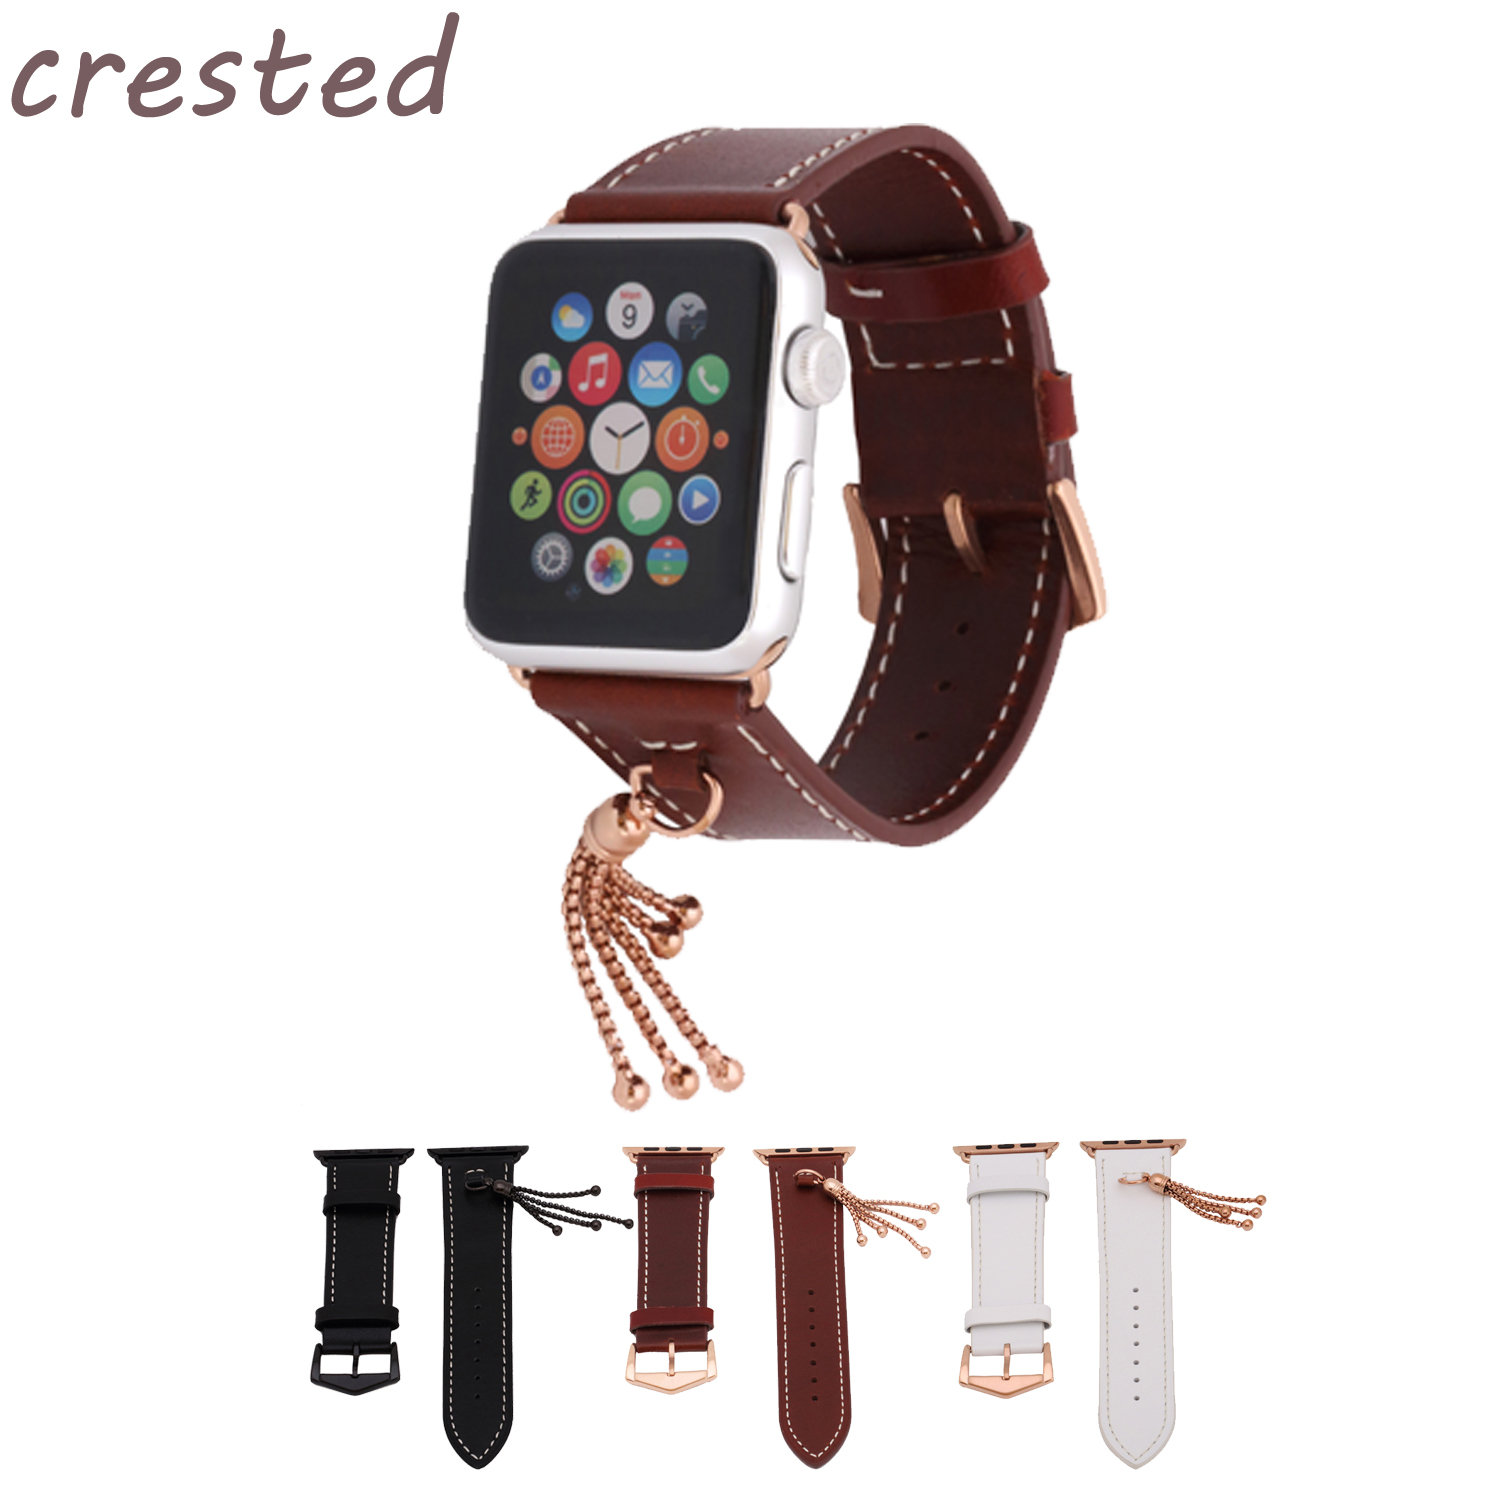 купить CRESTED genuine leather strap for apple watch band 42mm/38 Ornaments bracelet watch band women watchband for iwatch 1/2/3 belt по цене 767 рублей